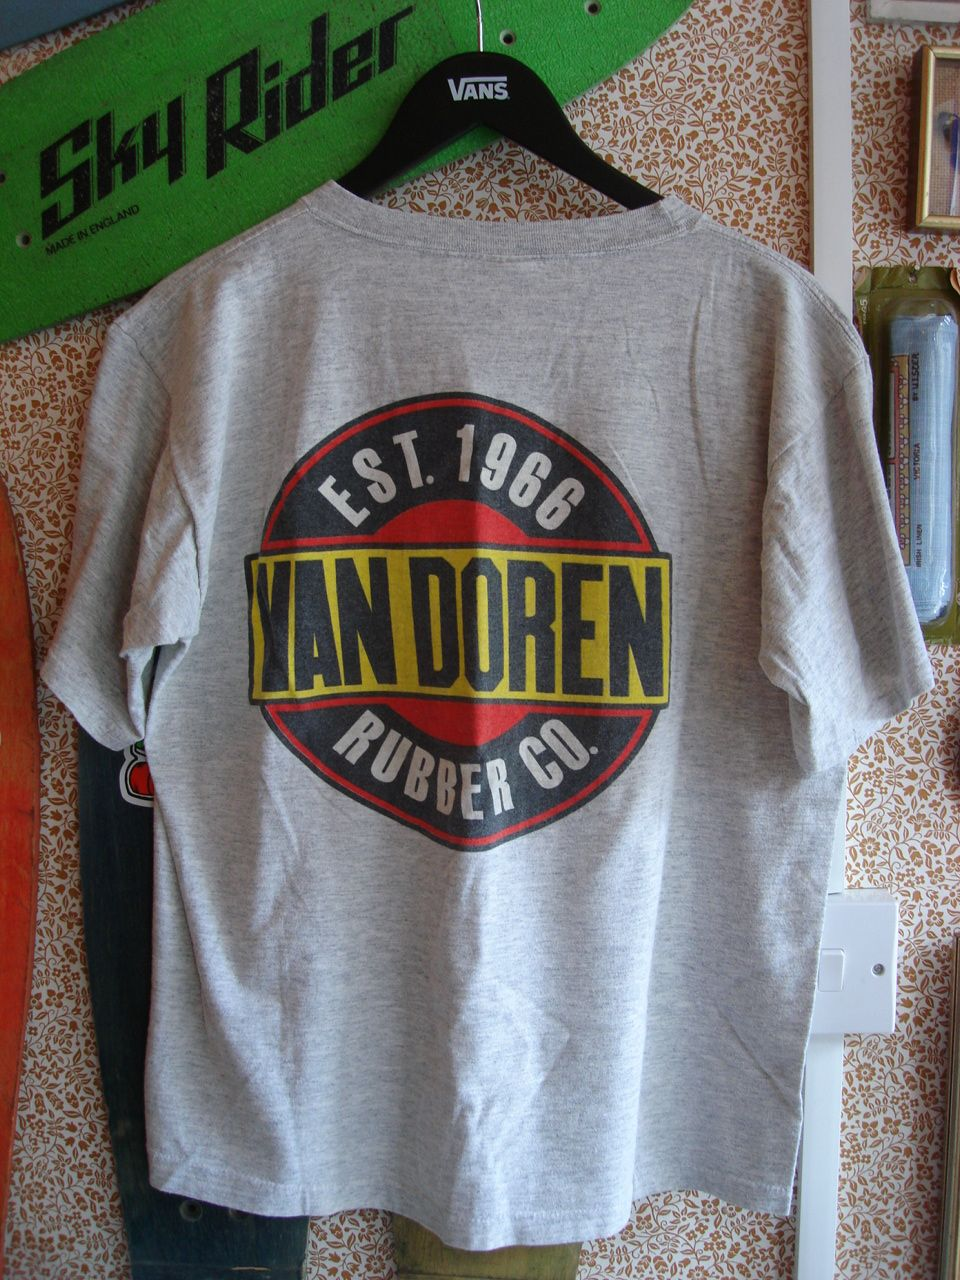 d2cbd2b6c8 vintage+vans+van+doren+rubber+co+clothing+t-